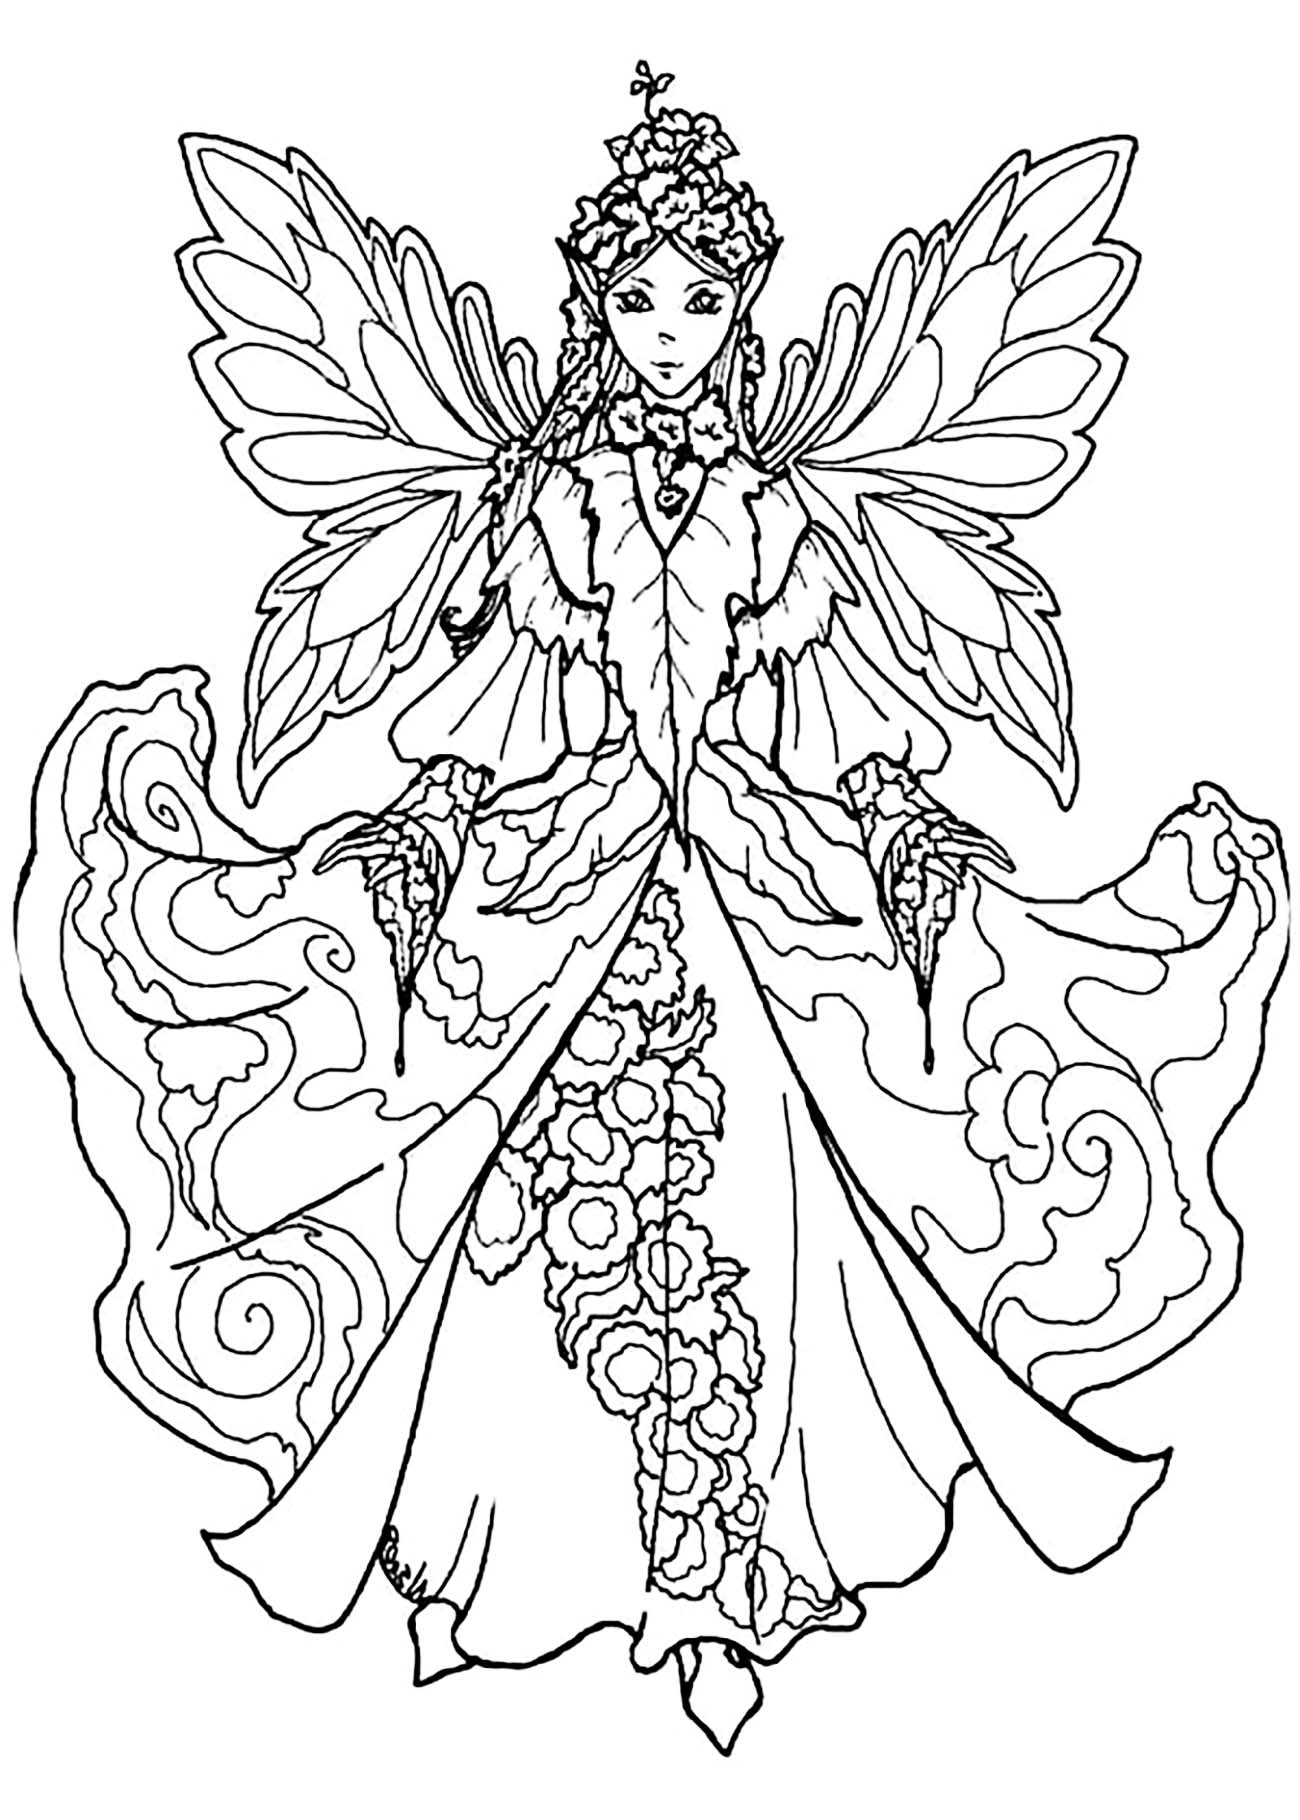 fairies coloring pages free printable fairy coloring pages for kids fairies coloring pages